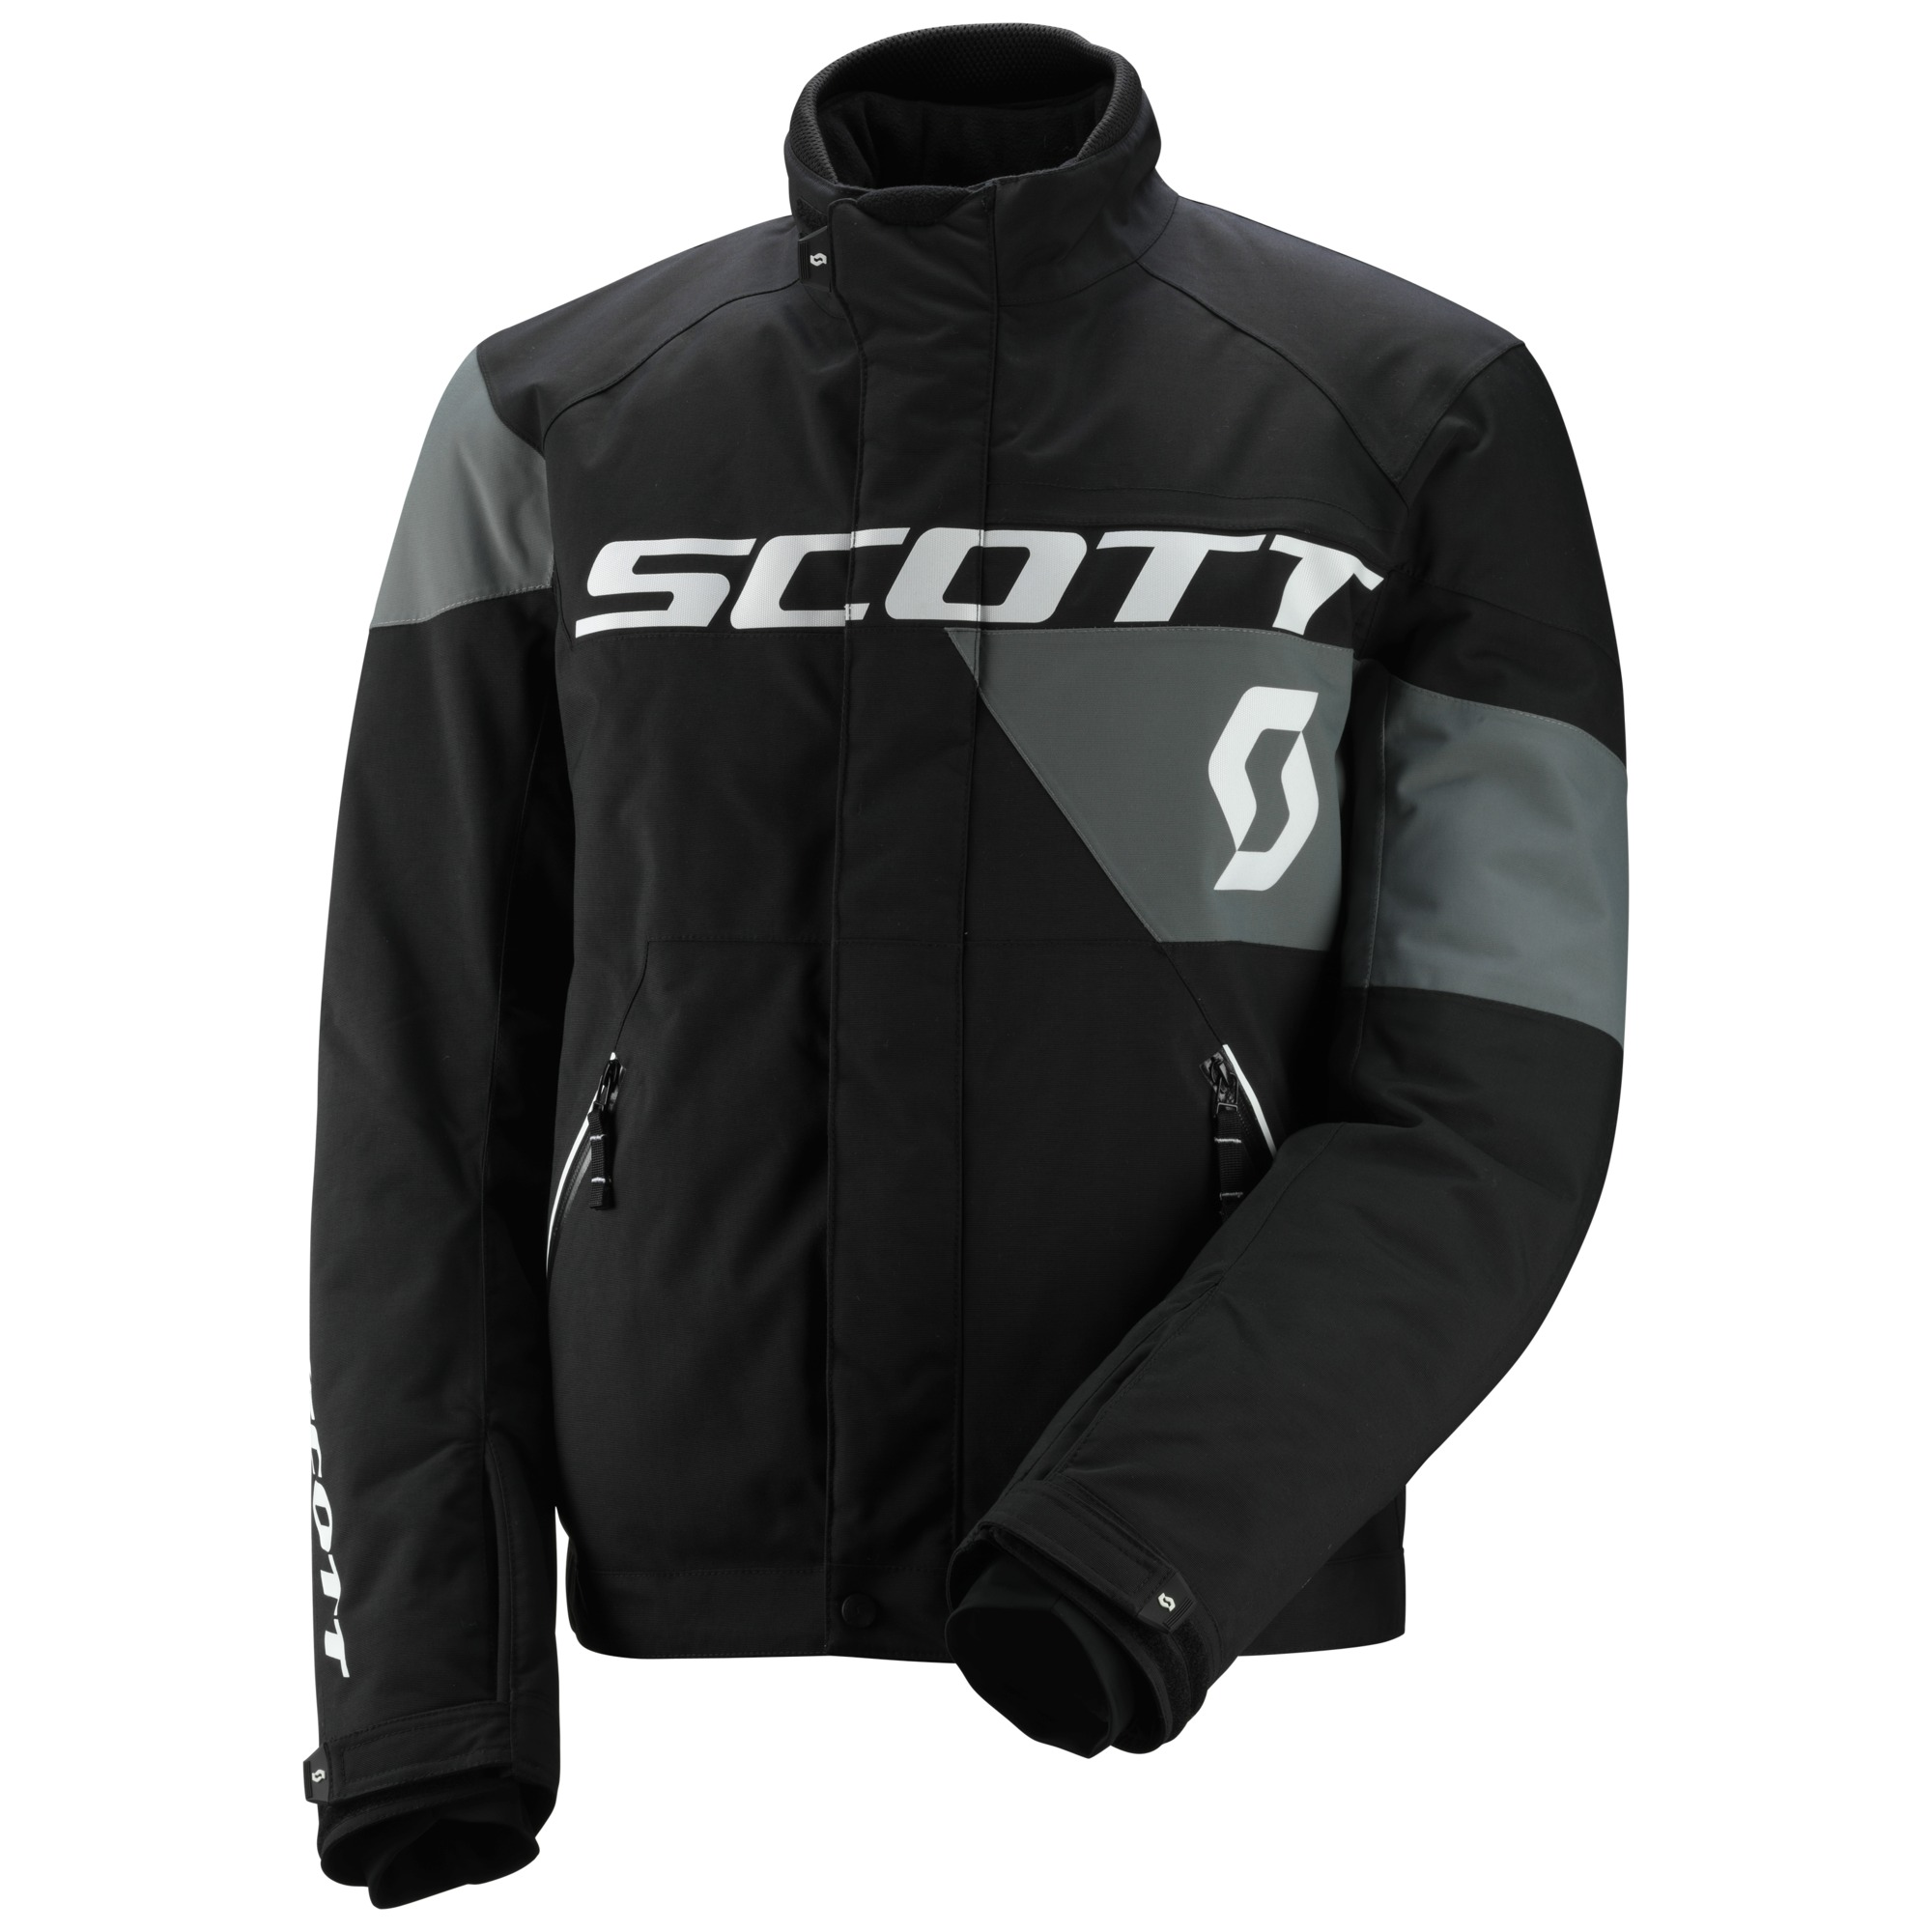 SCOTT Team Jacket